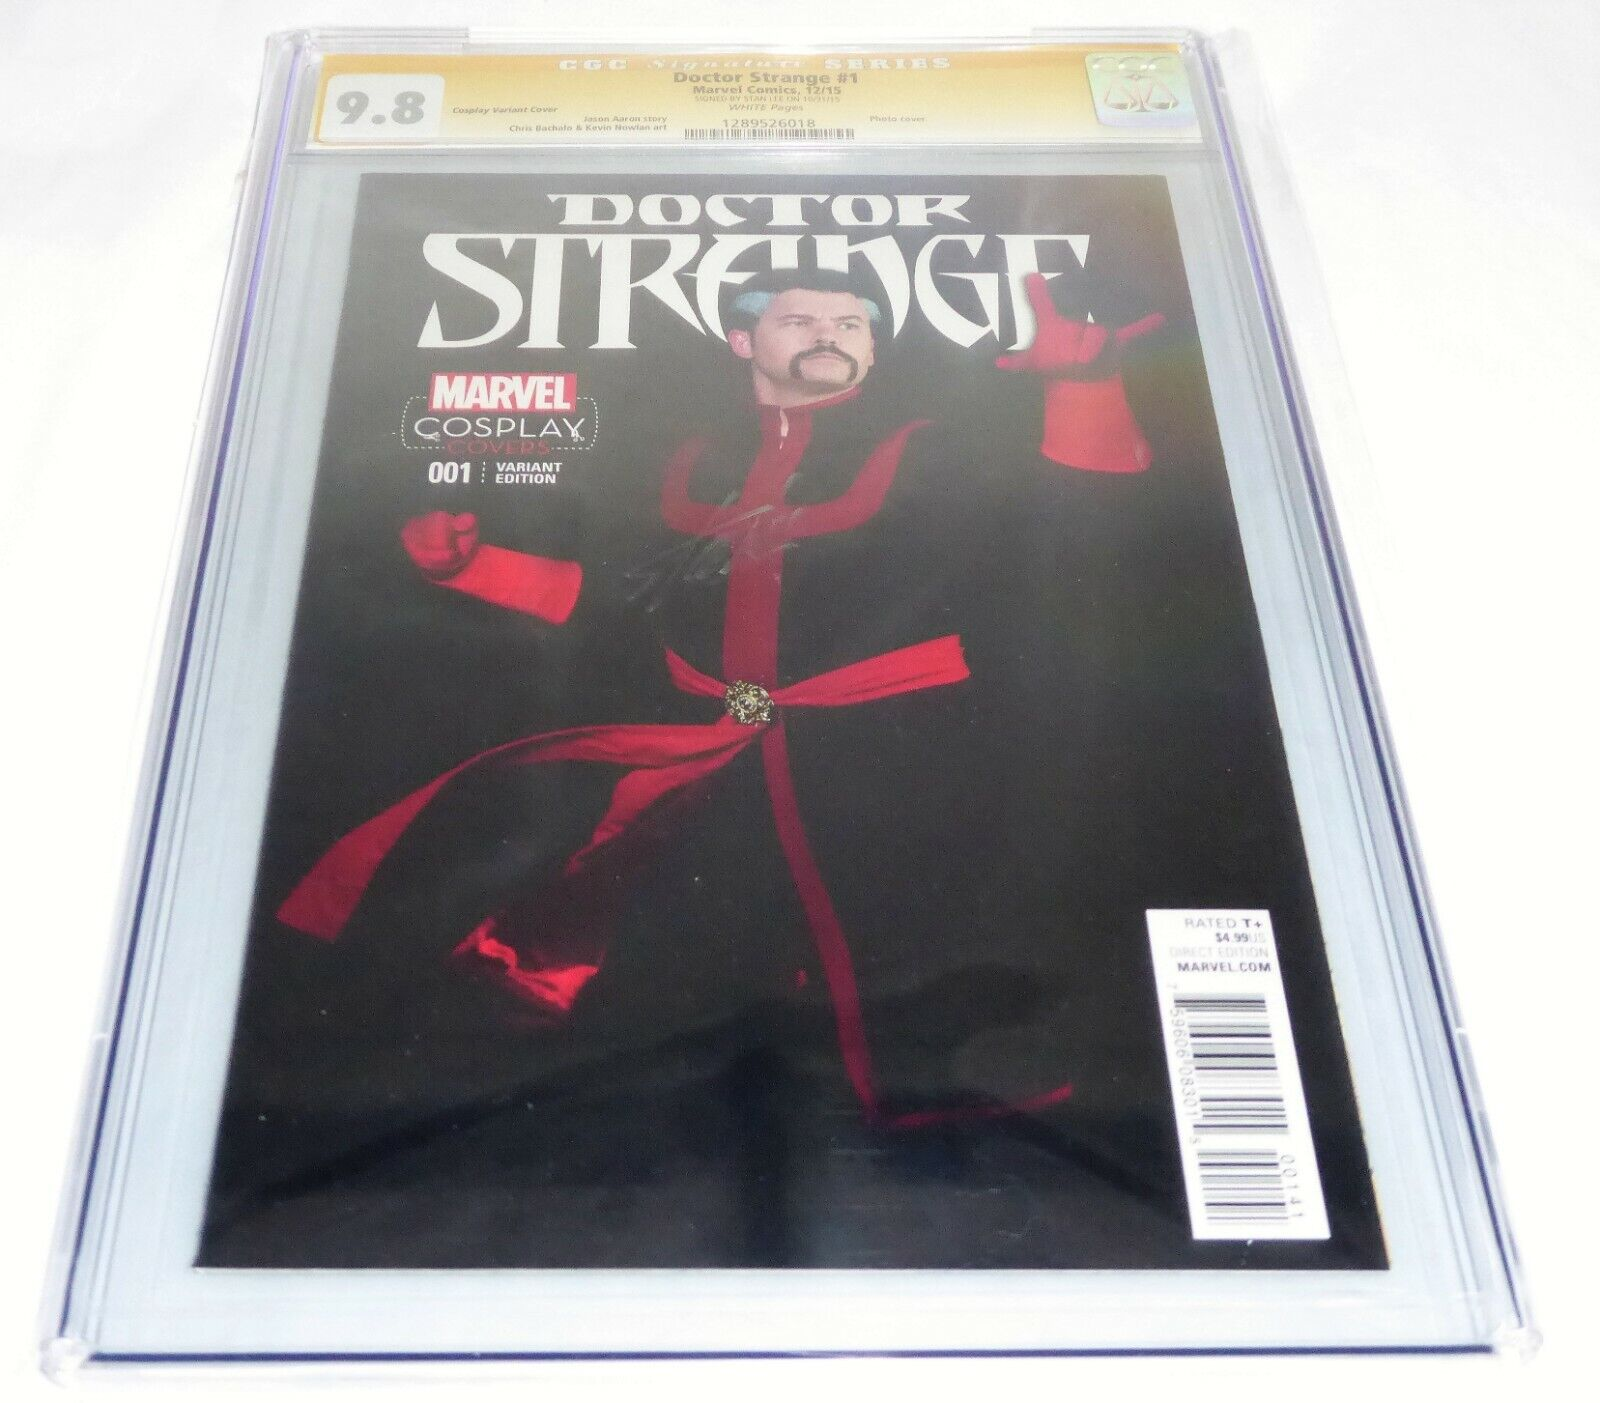 Doctor Strange #1 CGC SS Signature Autograph STAN LEE Cosplay Variant Cover 9.8